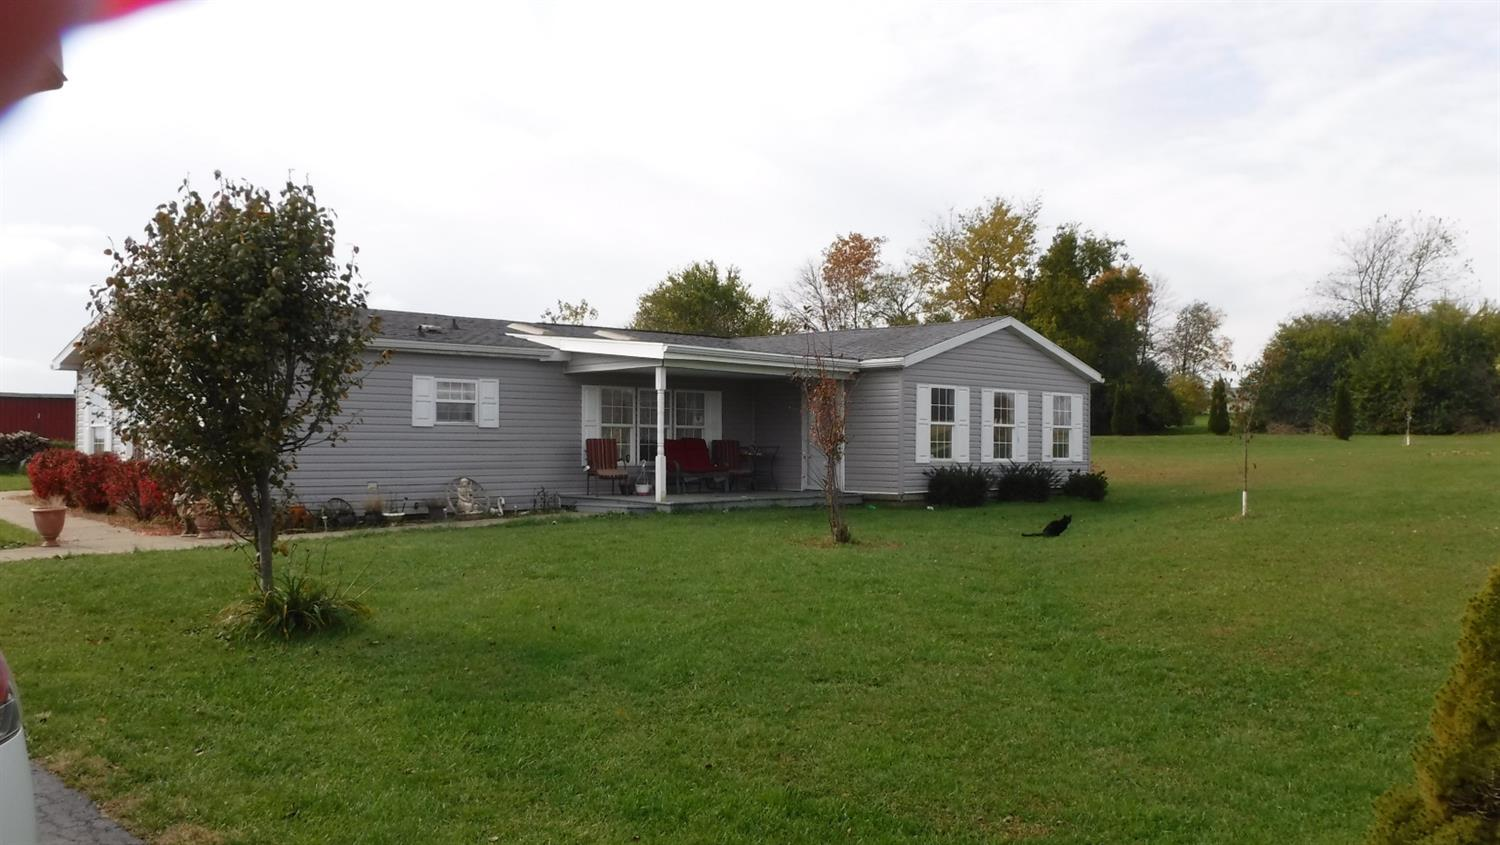 1168 Leeka Rd Green Twp. - Clinton Co., OH